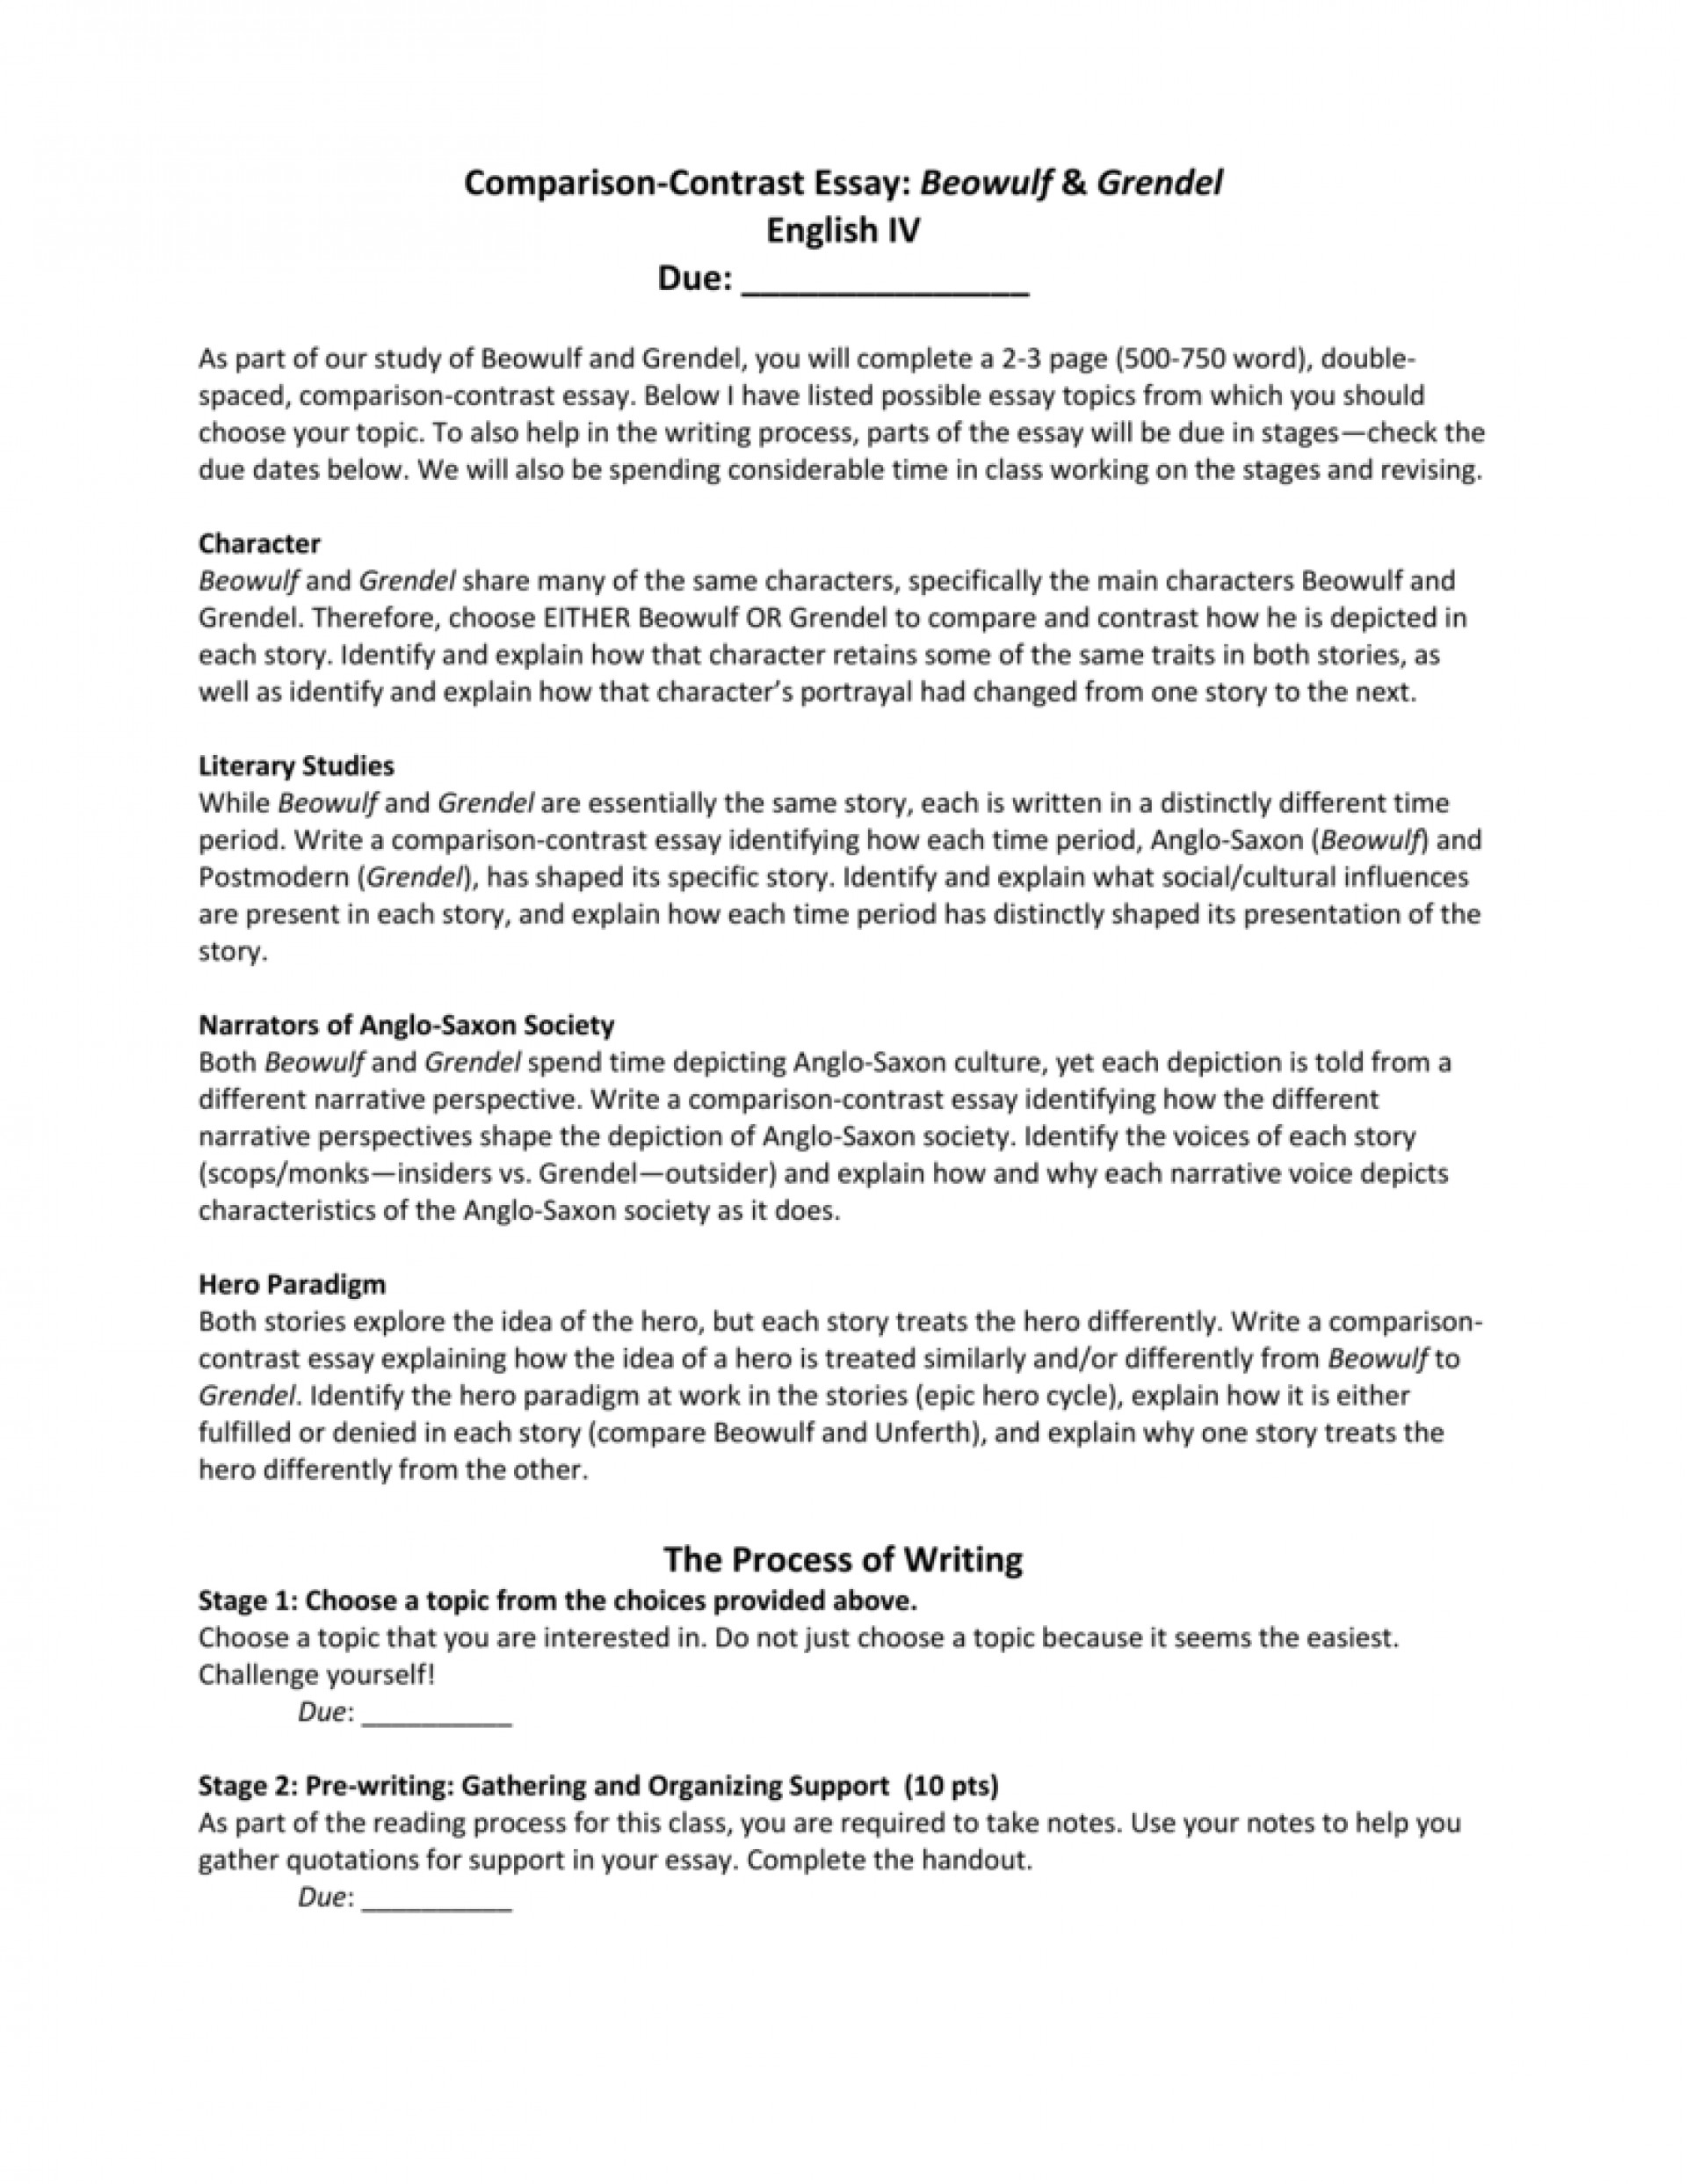 015 008061732 1 Essay Example Comparison And Awful Contrast Examples Point-by-point 1920